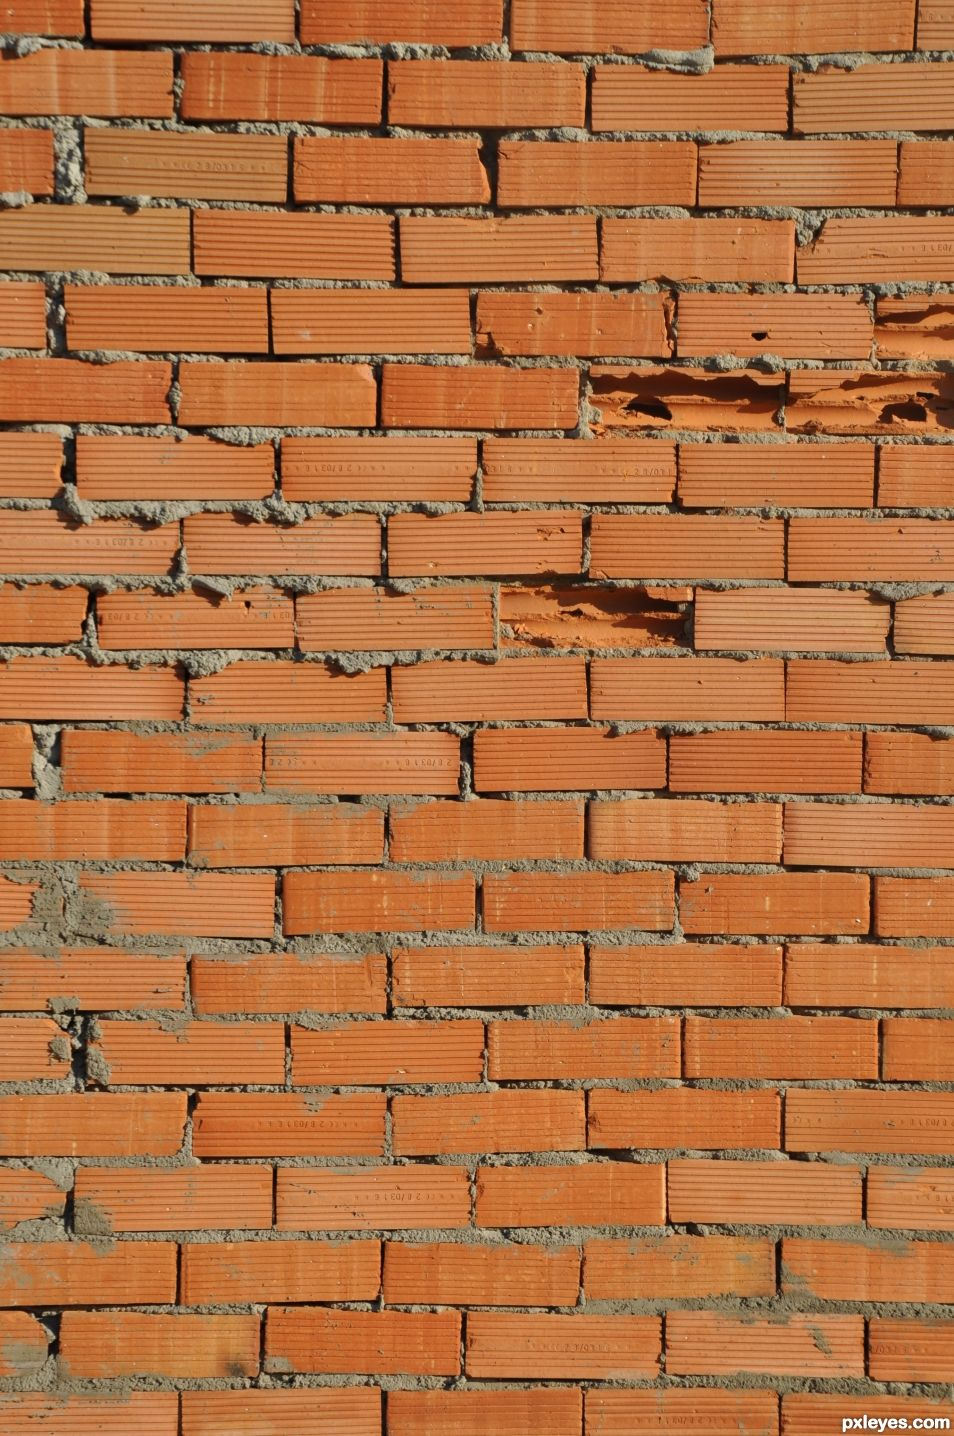 Bricks on the wall